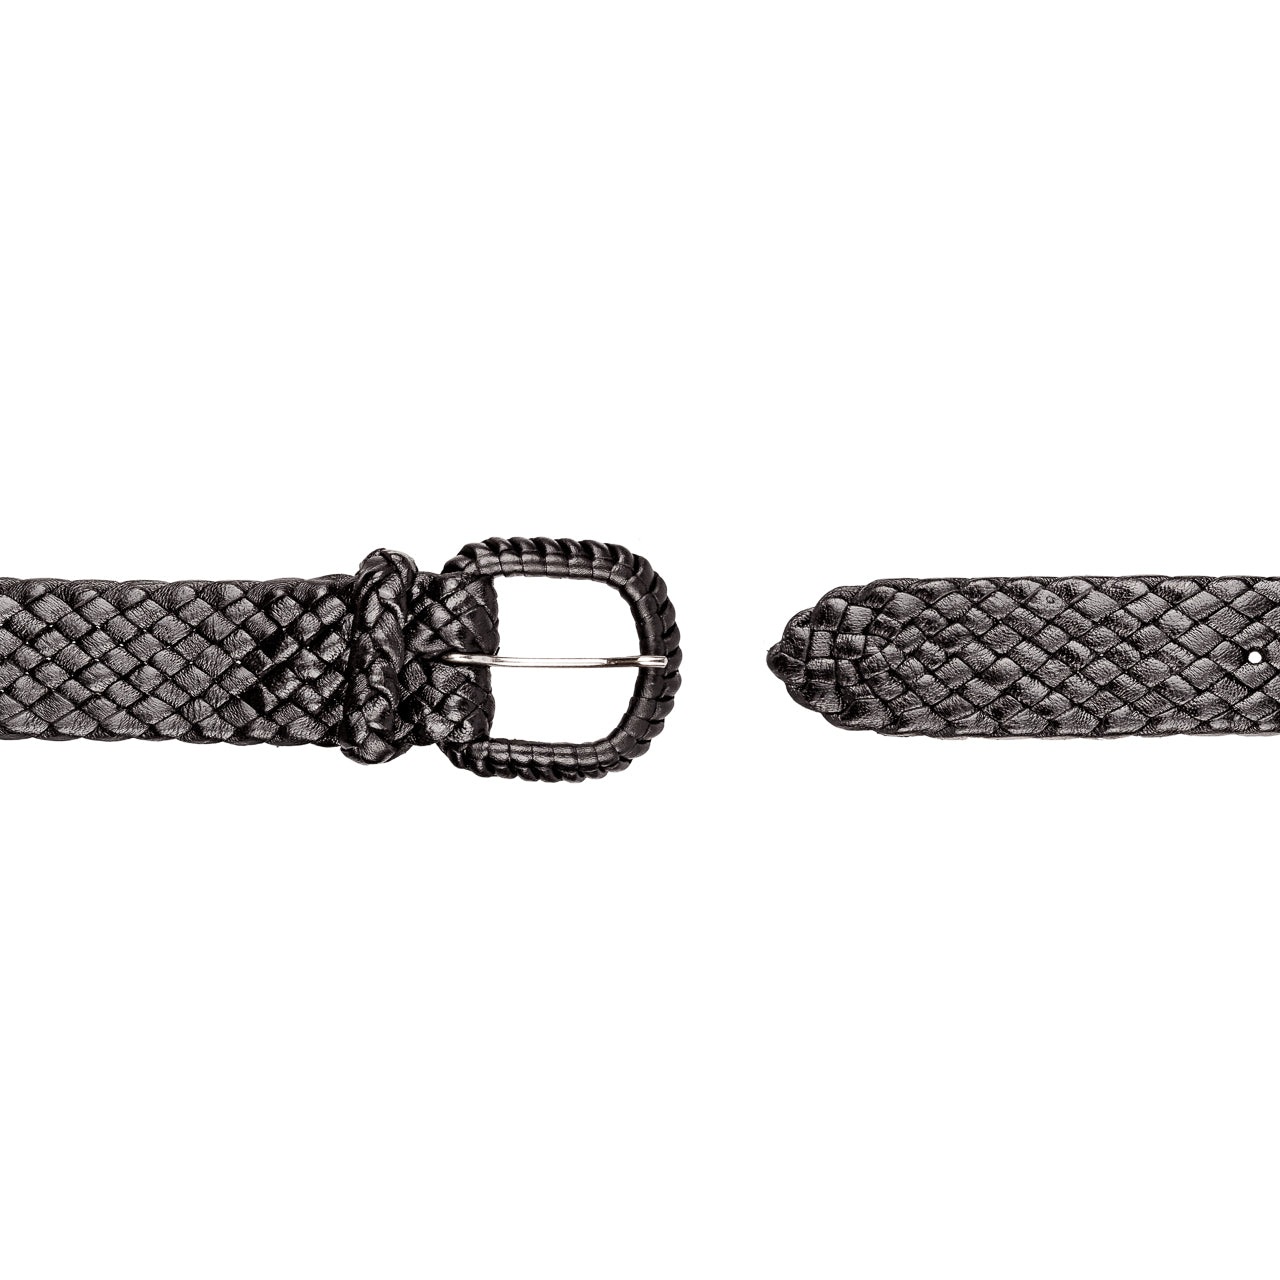 Pioneer - Kangaroo Plaited Ladies Leather Buckle Belt (30mm Wide)